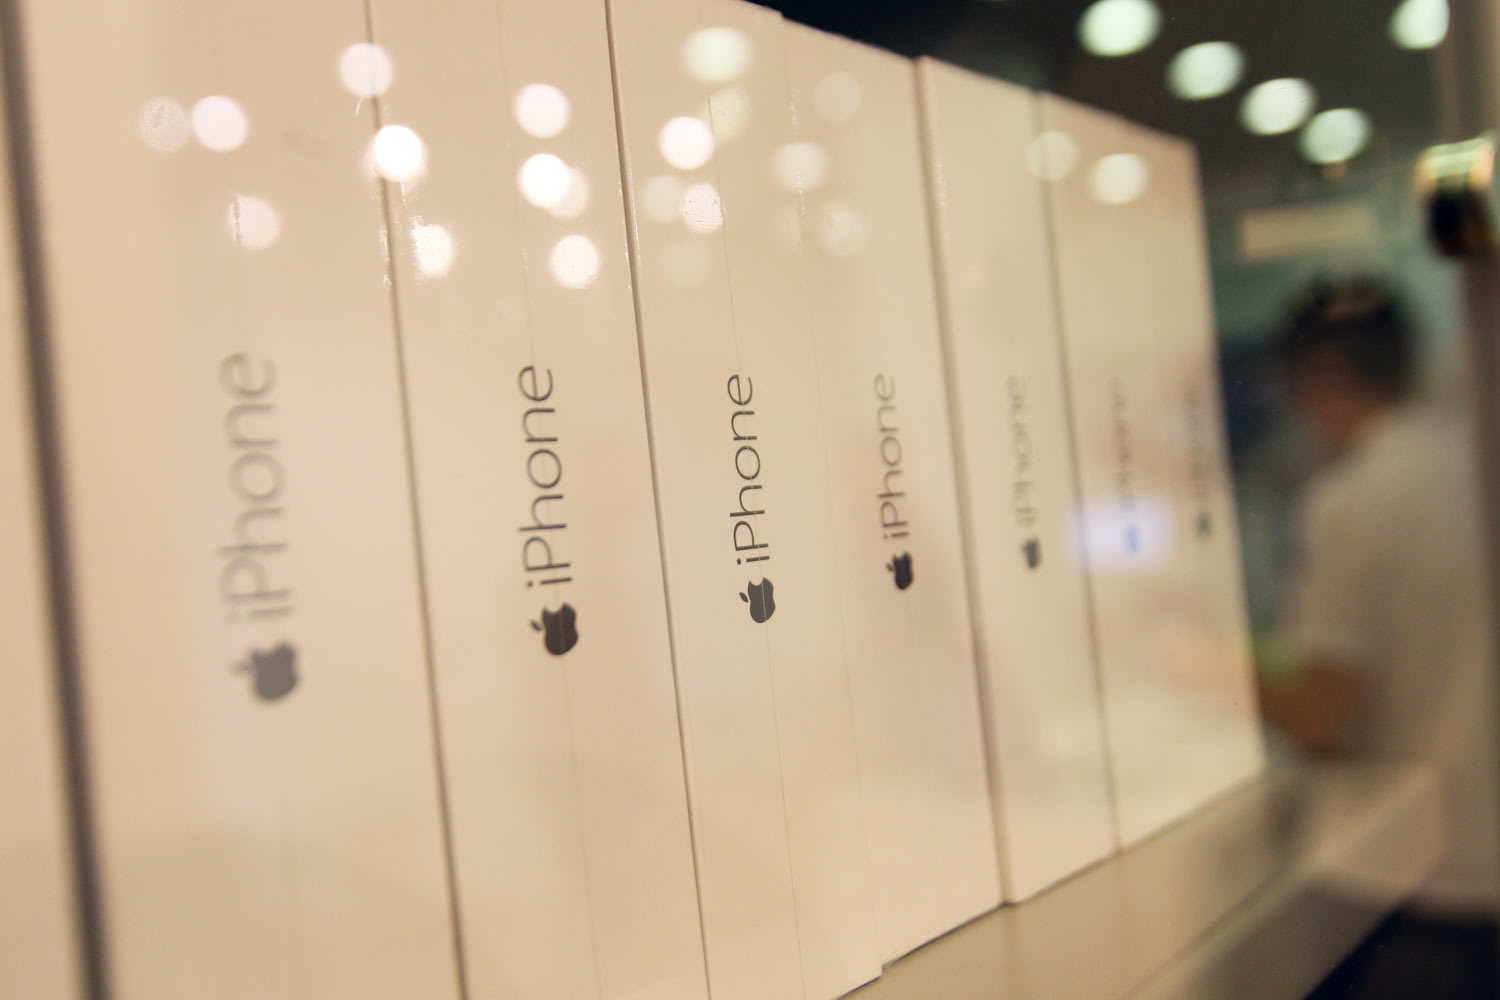 California Institute of technology has sued Apple, accusing it of violating patents for Wi-Fi